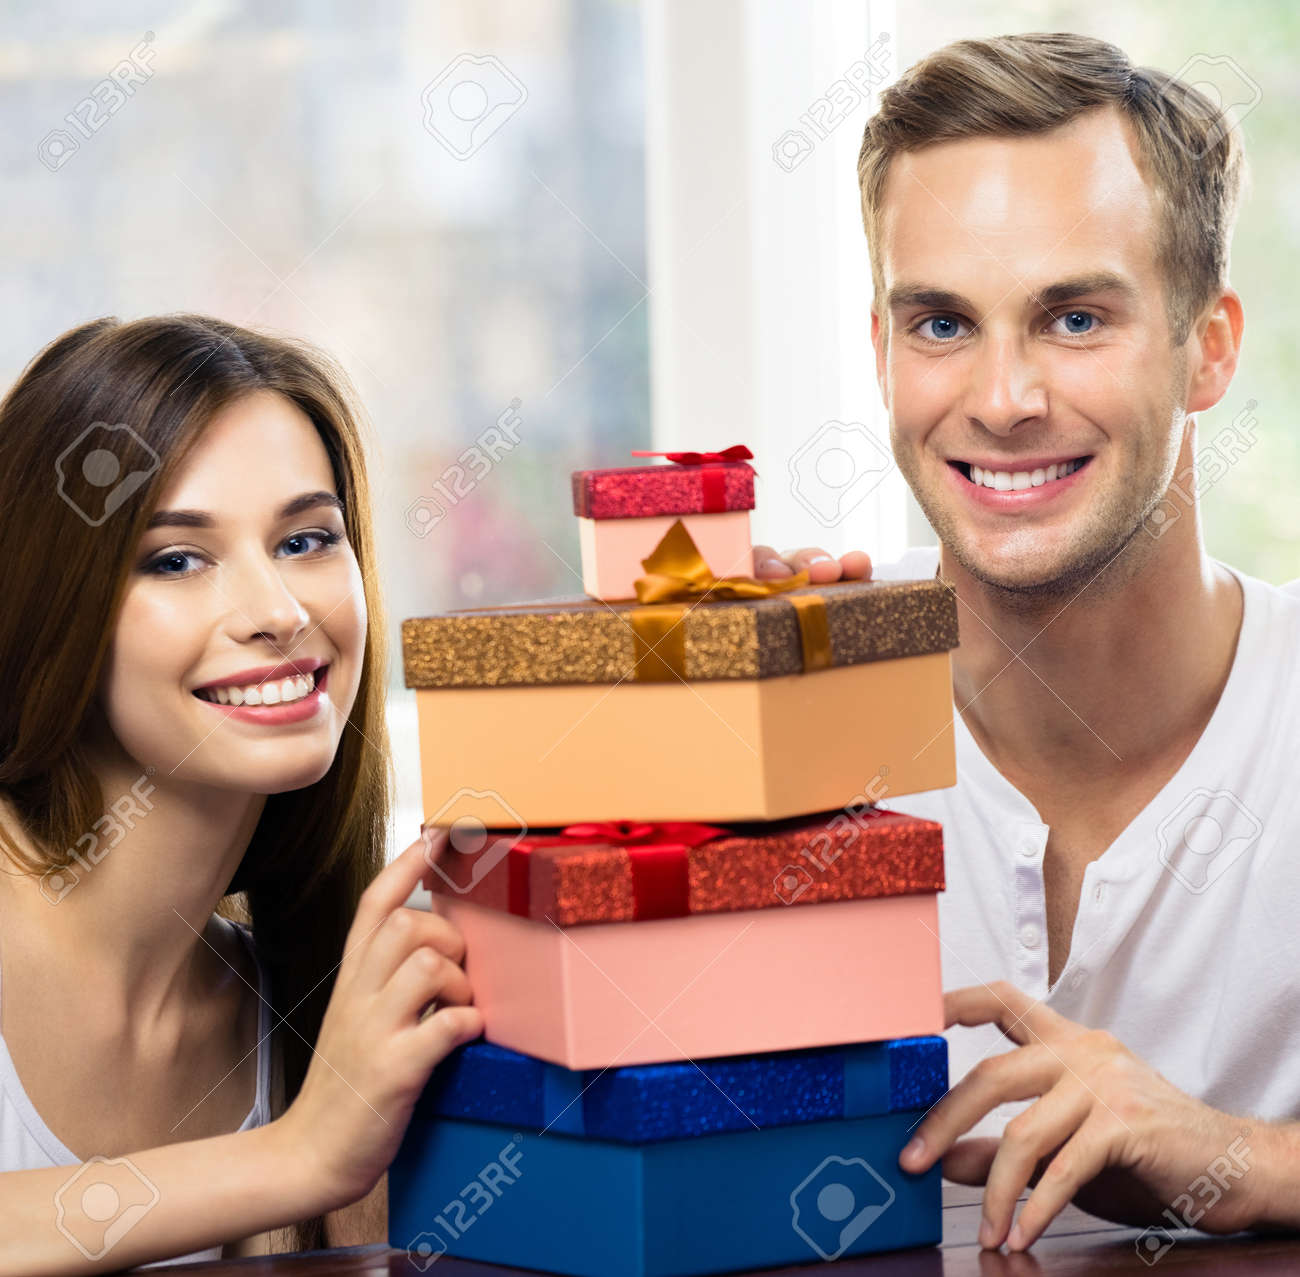 Square image of happy excited smiling couple with gifts boxes, at home. Shopping, holiday sales, love, relationship concept - young man and woman, indoors. - 171576282